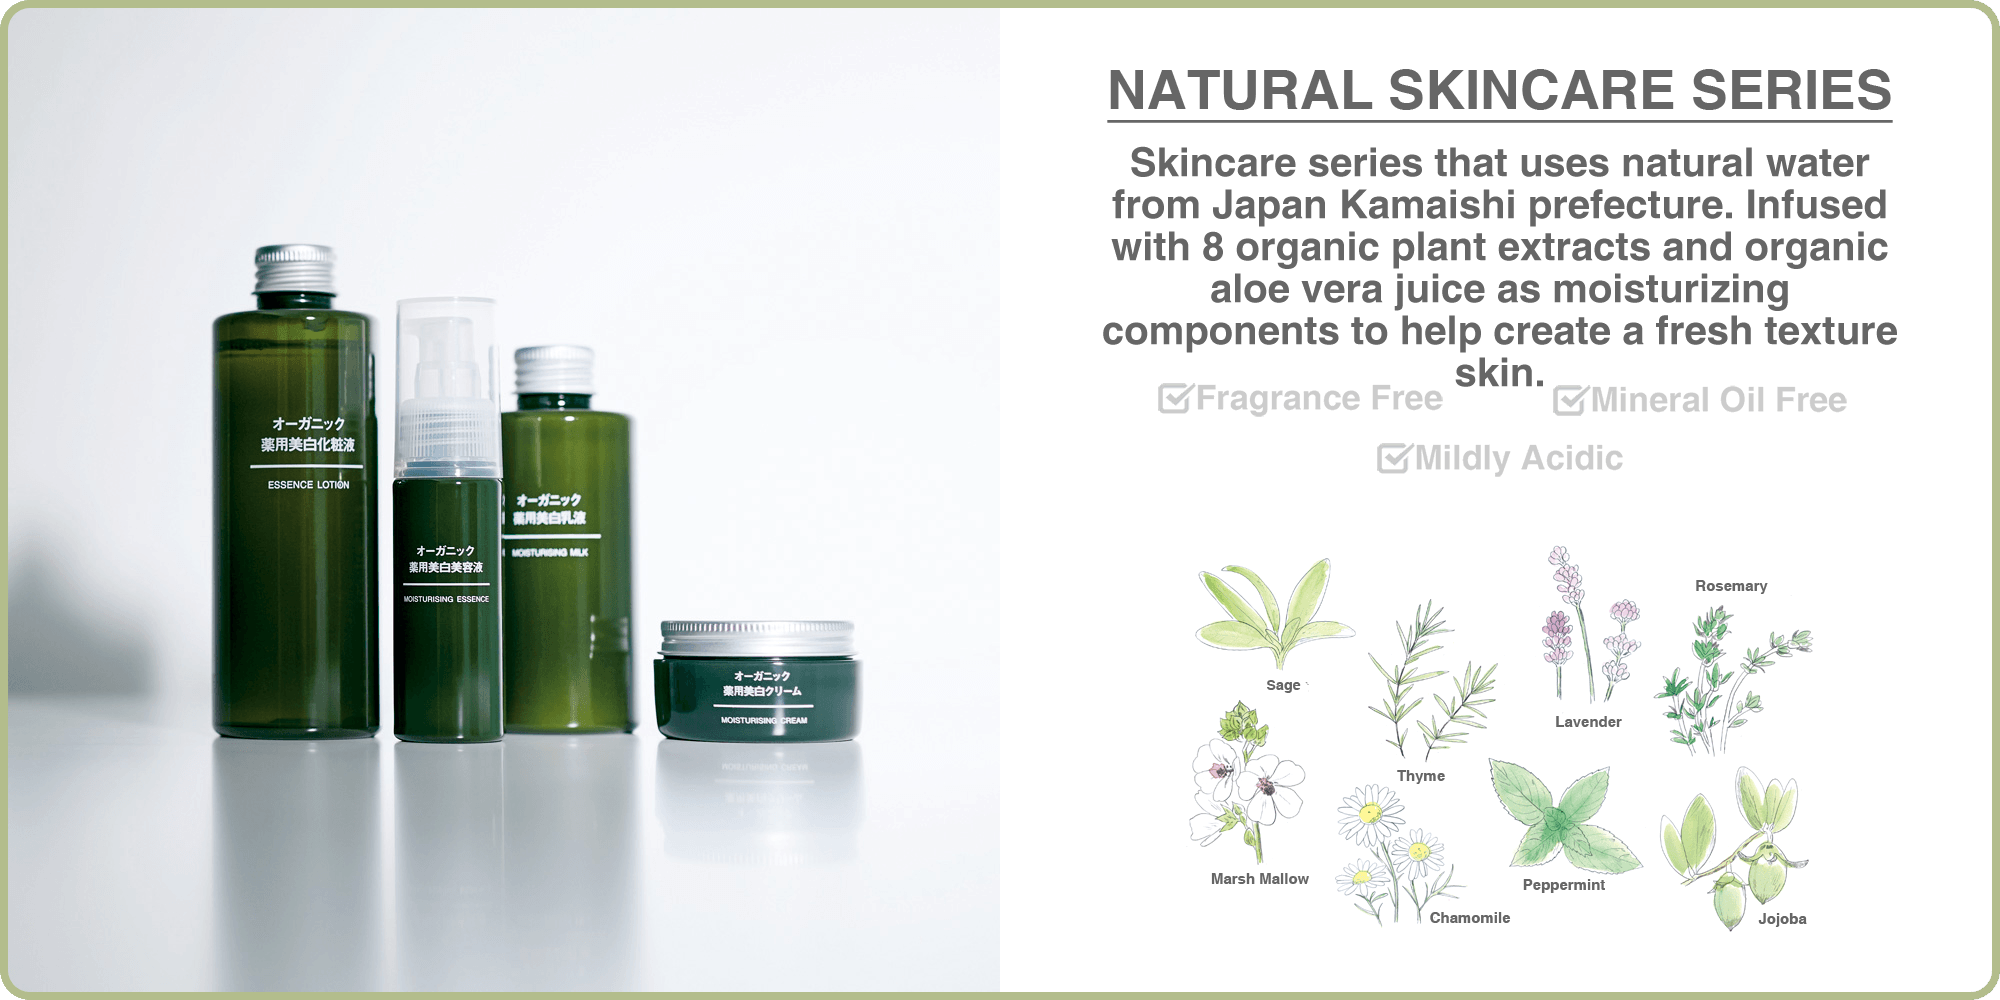 Natural skincare series